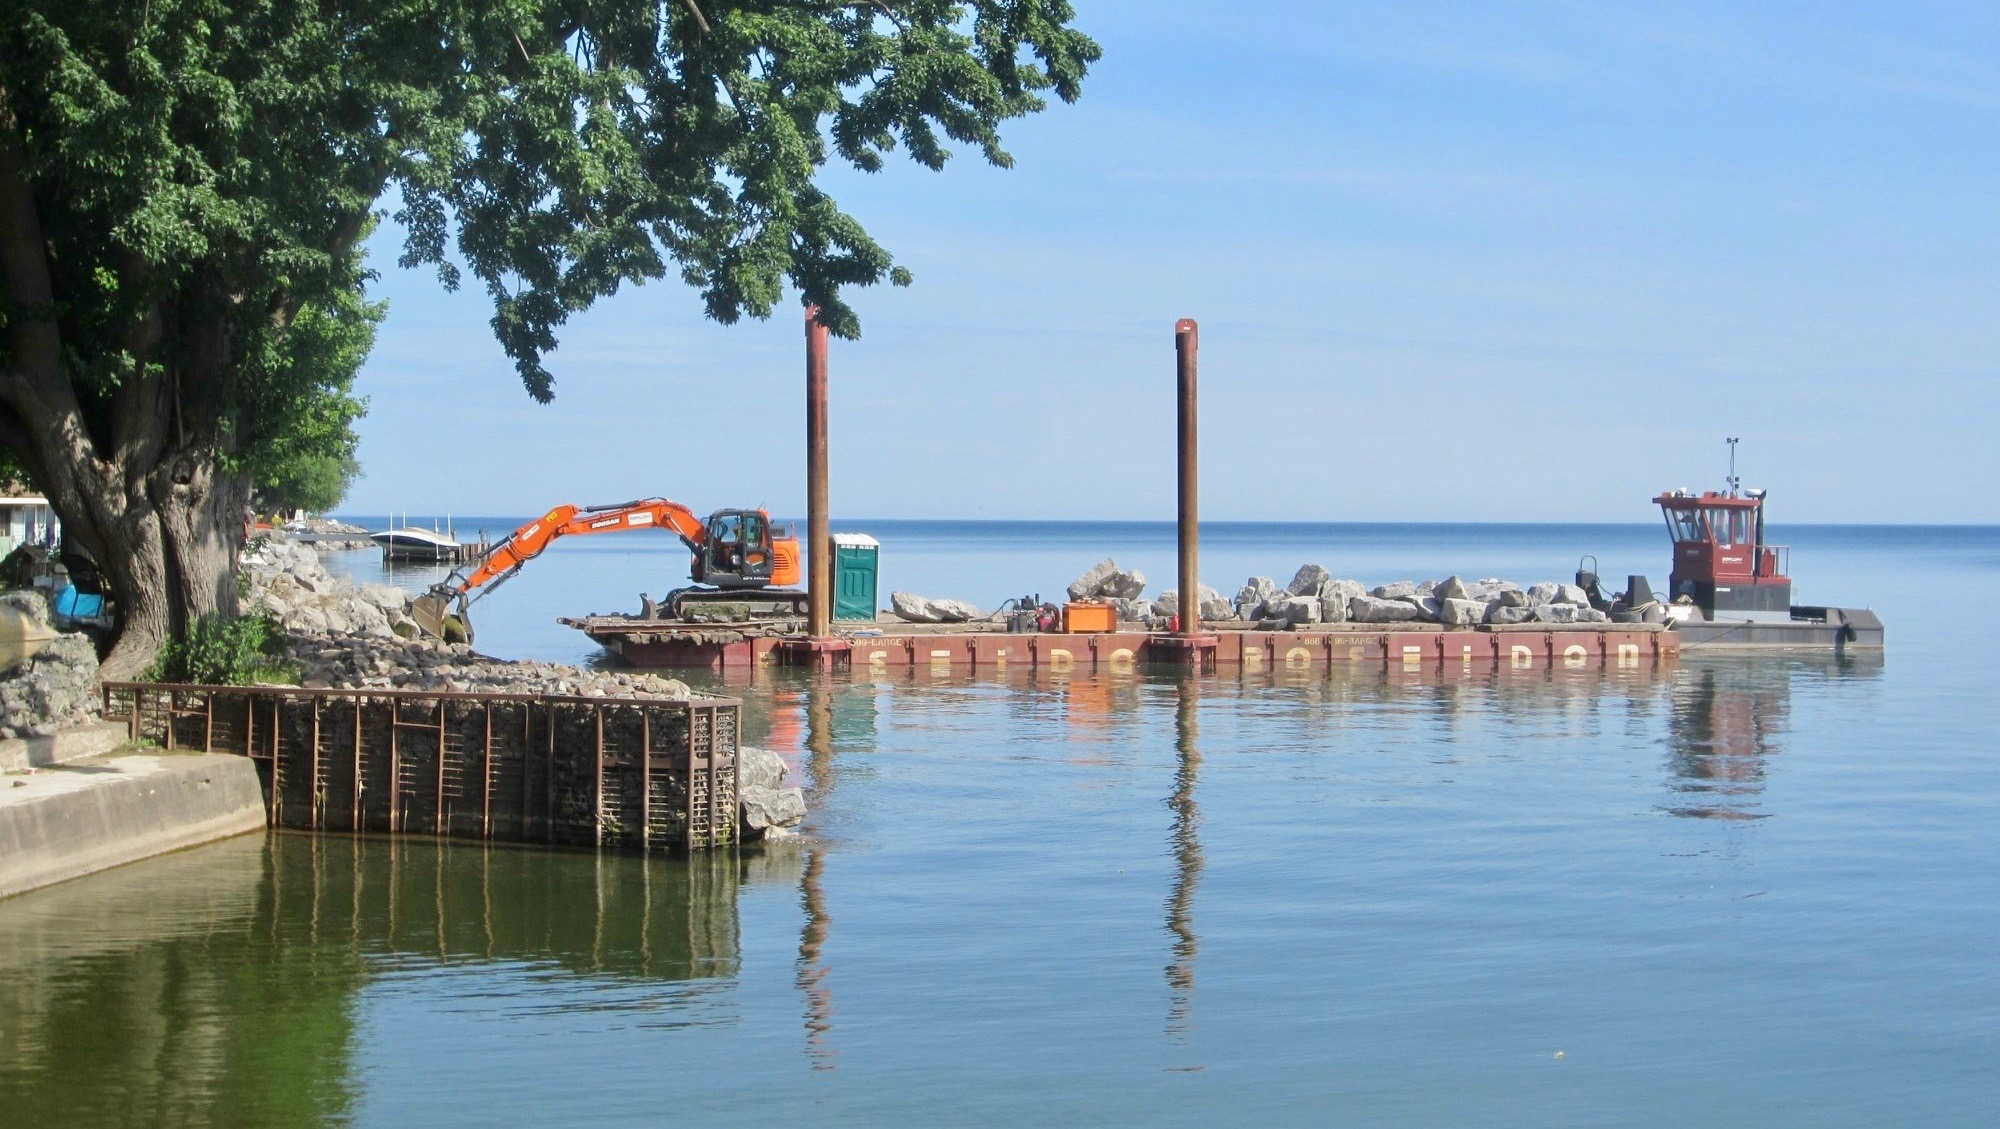 Poseidon sectional barges, Seaway Marine Group, Lake Ontario, Thousand Islands, sections, spuds